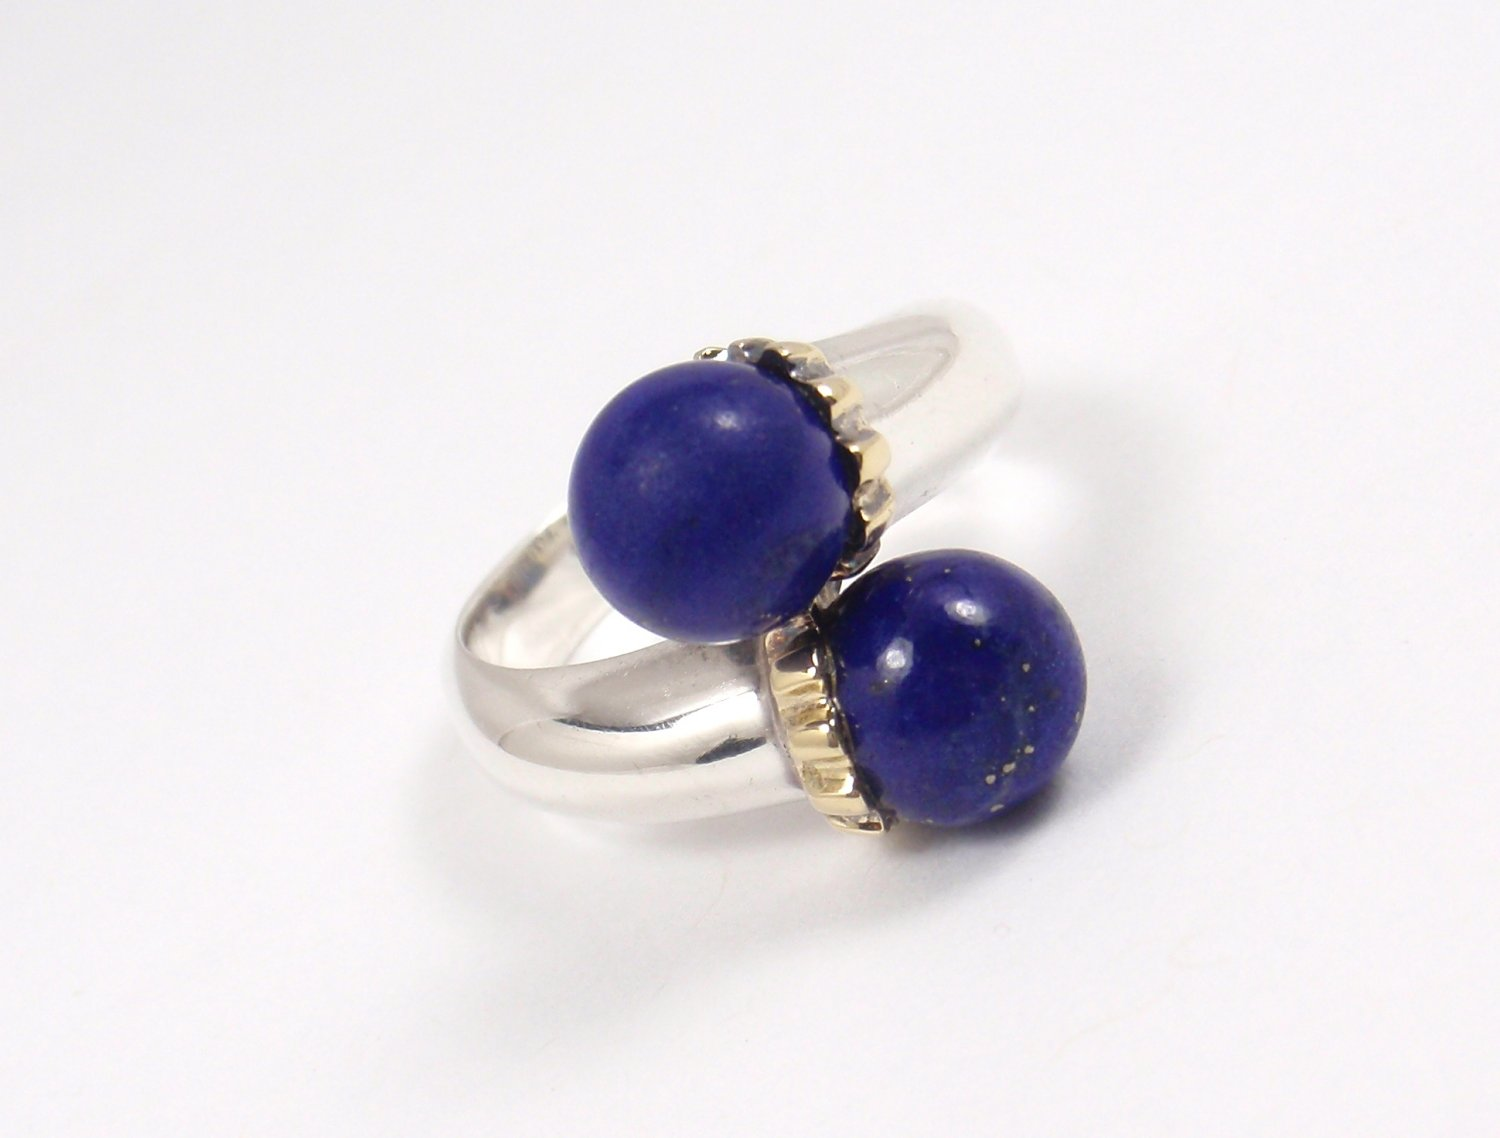 bf86f2de9 Rare Vintage Tiffany & Co Sterling Silver 18K Gold Lapis Lazuli Bypass Ring  Size 5